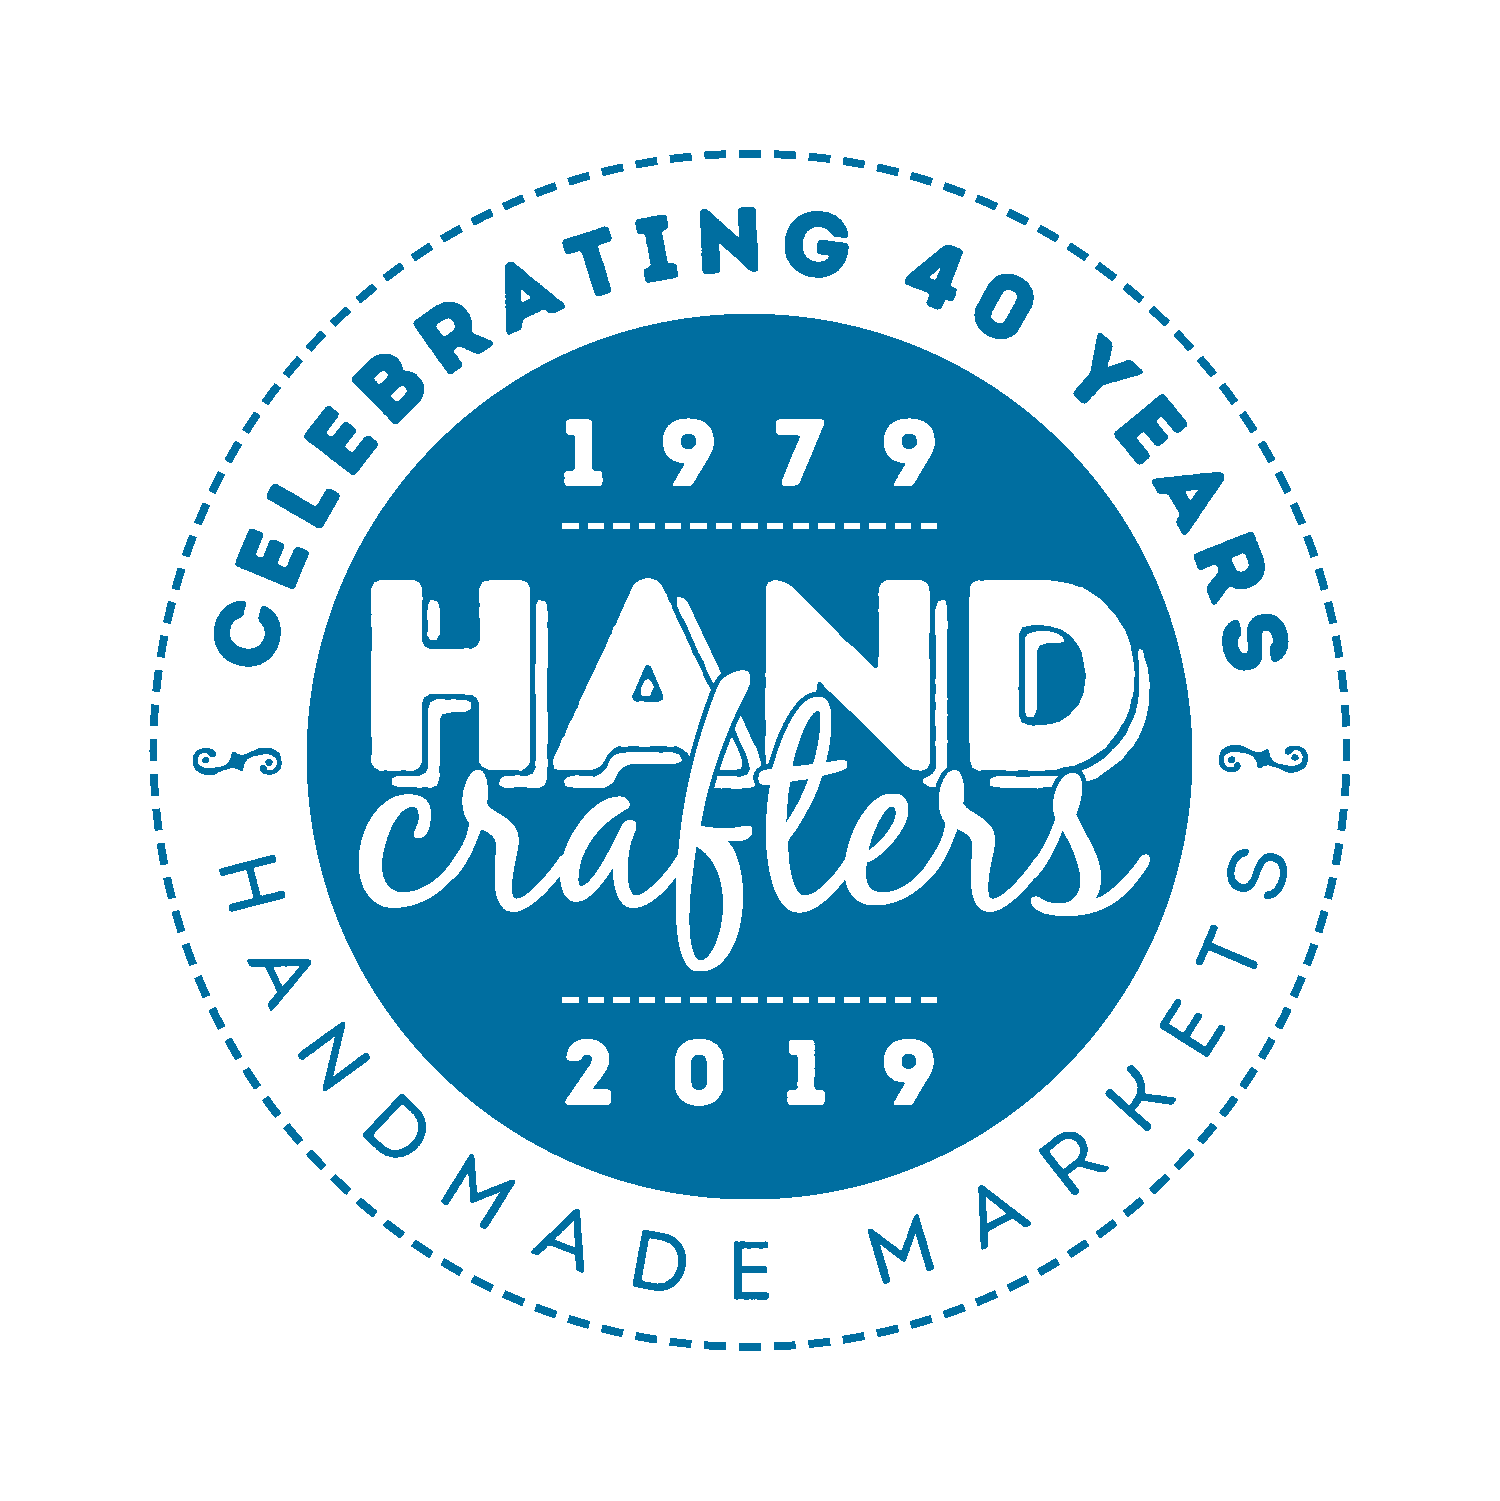 Handcrafters markets